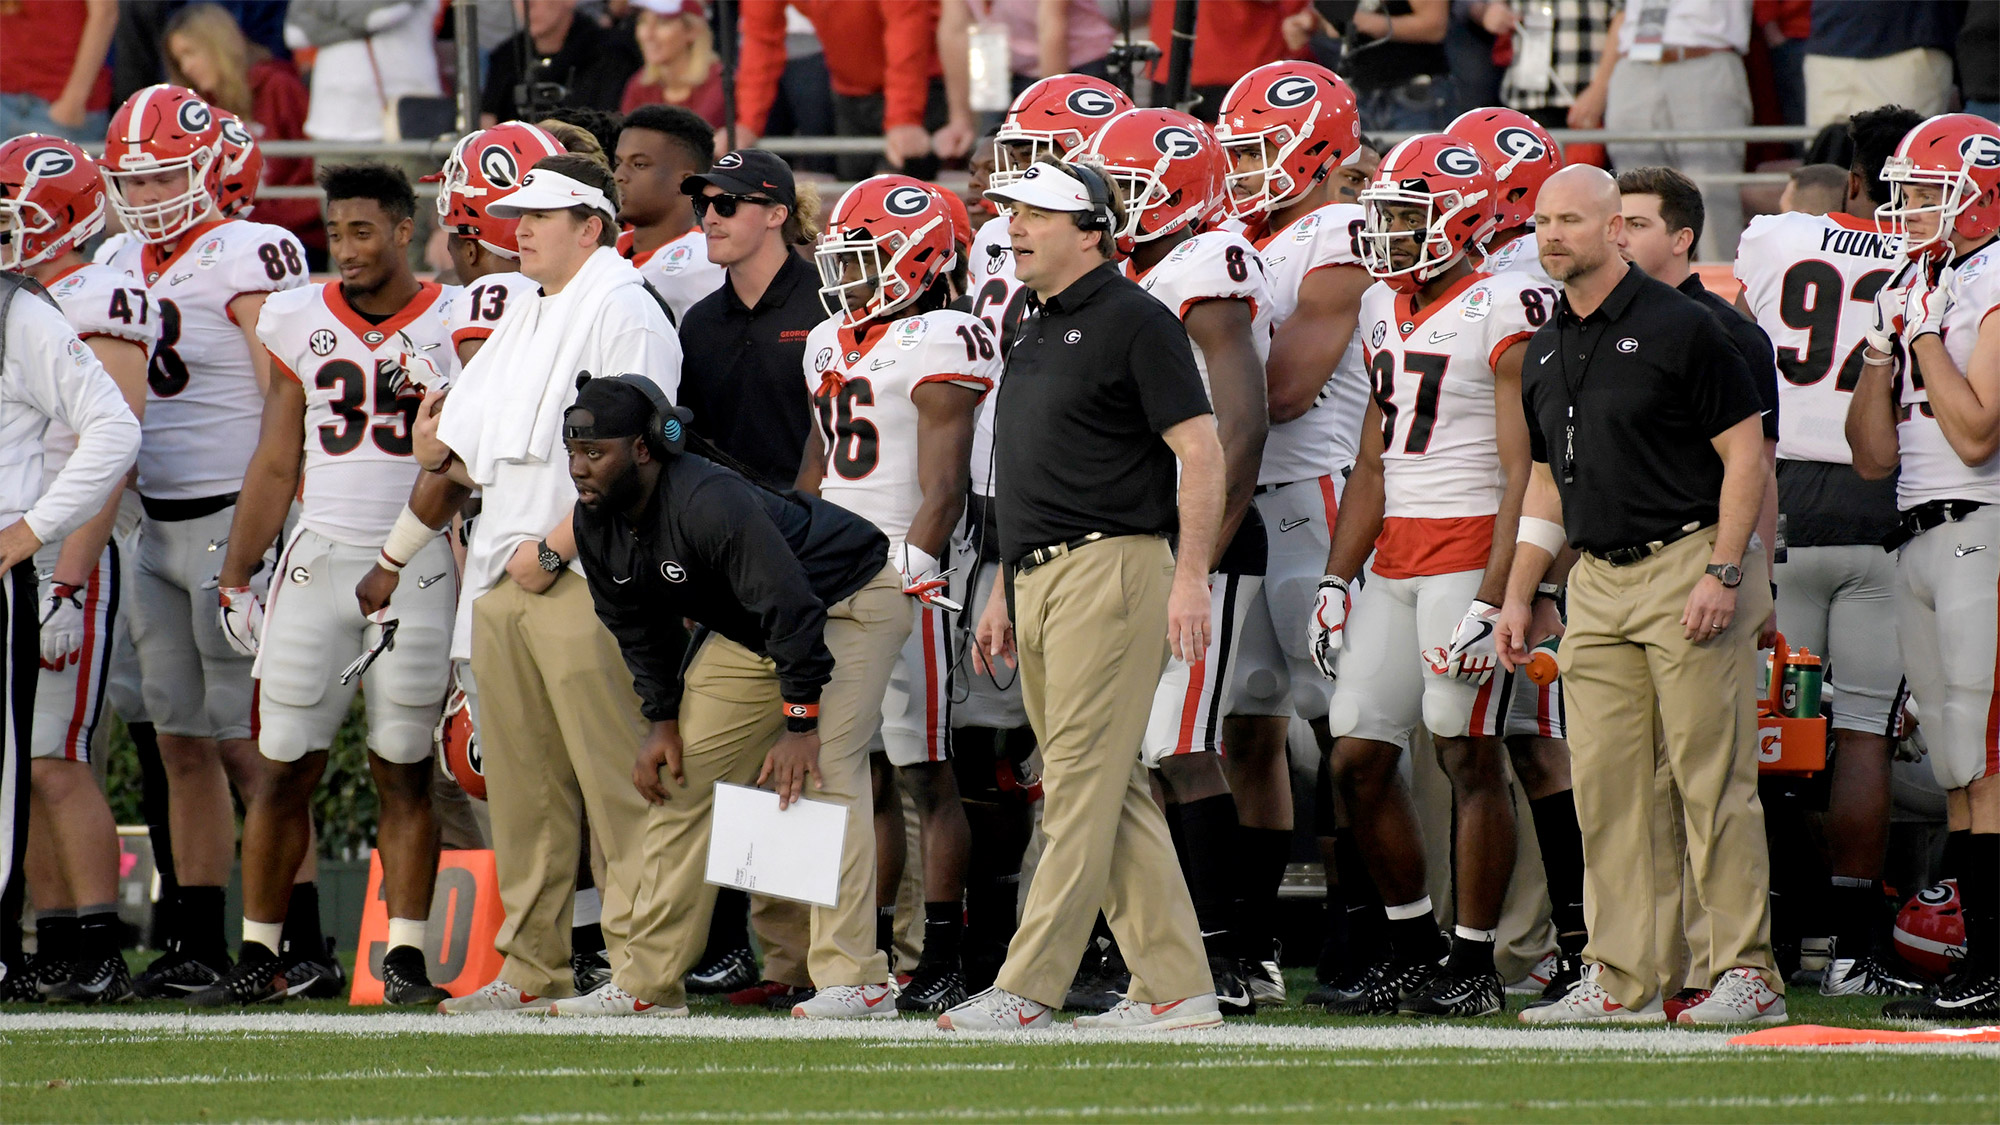 Uga Coaches Wear Coach To Cure Md Patches